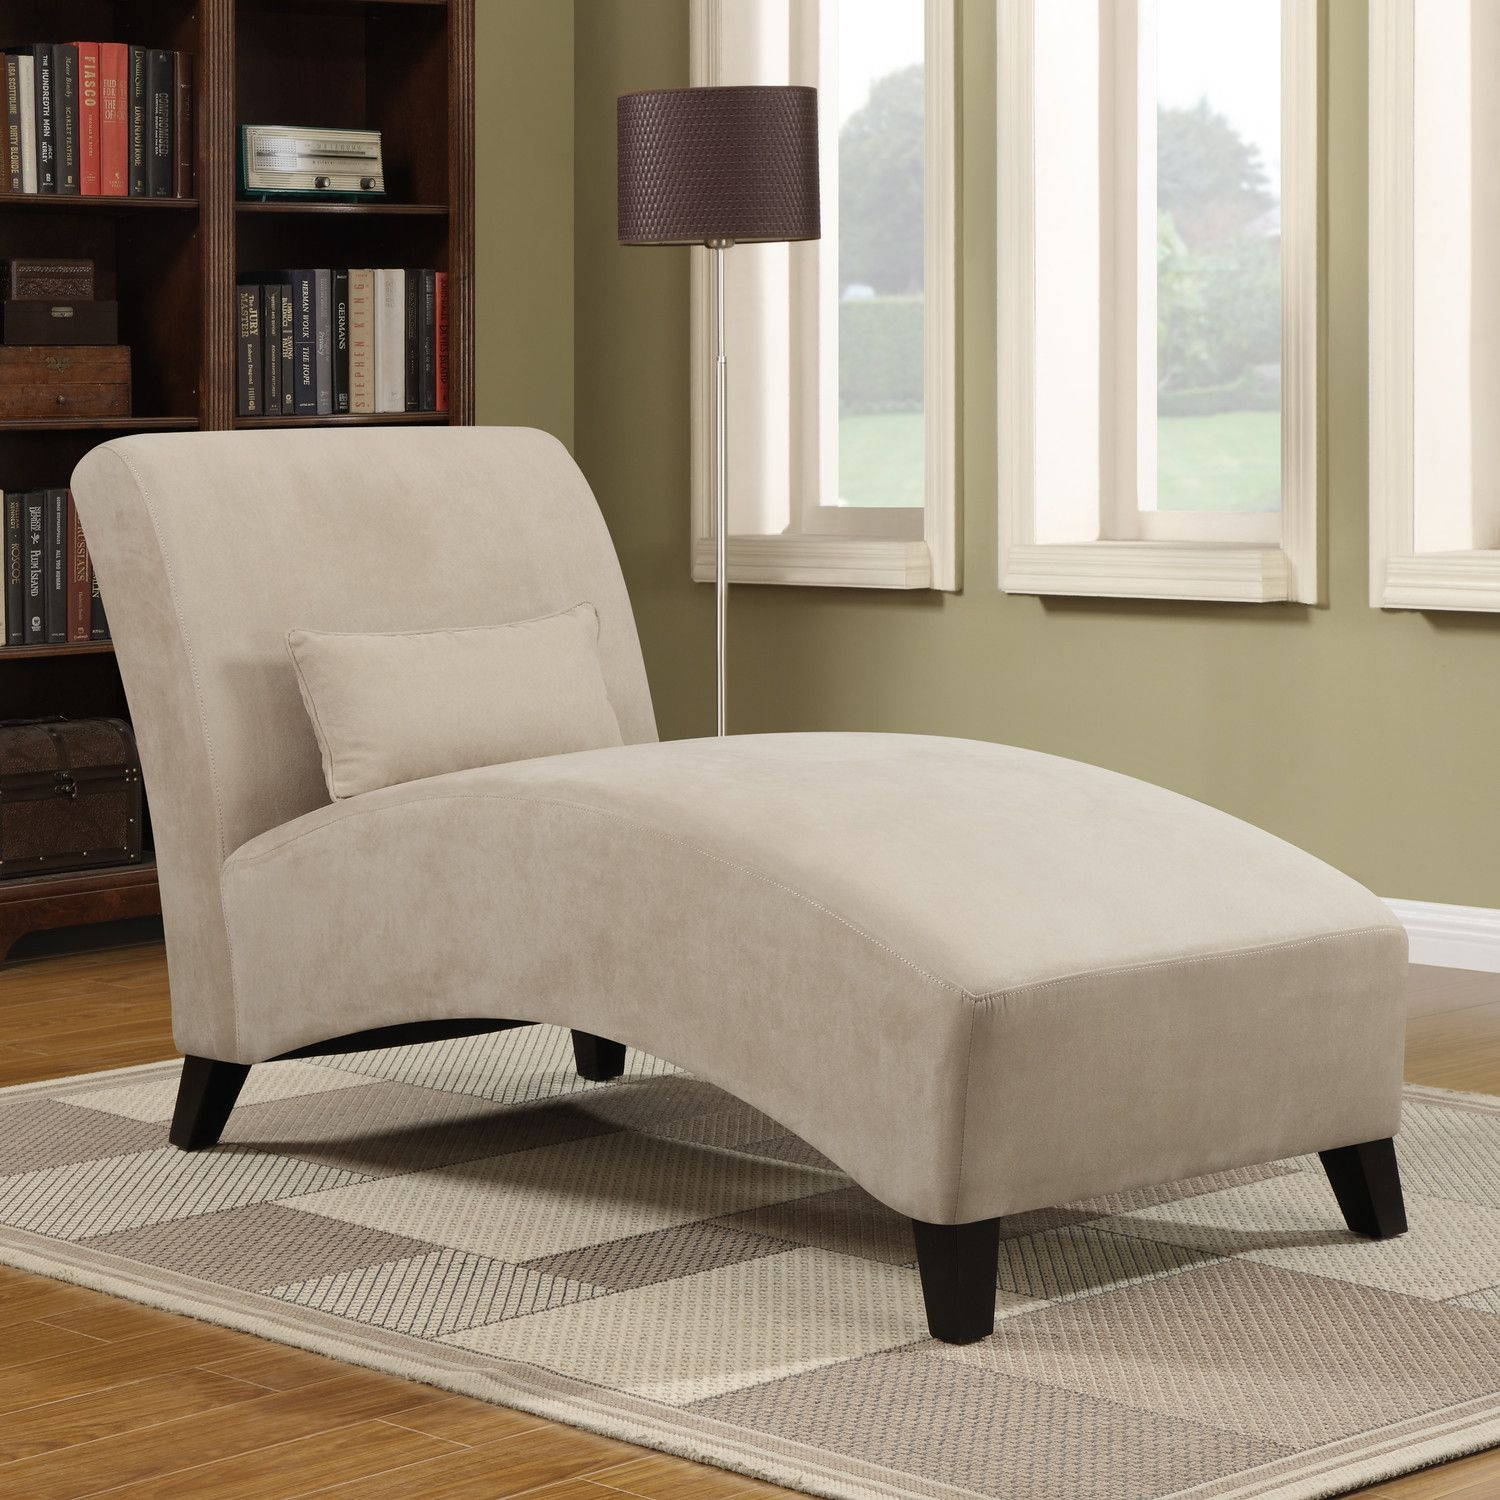 Handy Living Commotion Chaise Lounge Reviews Wayfair